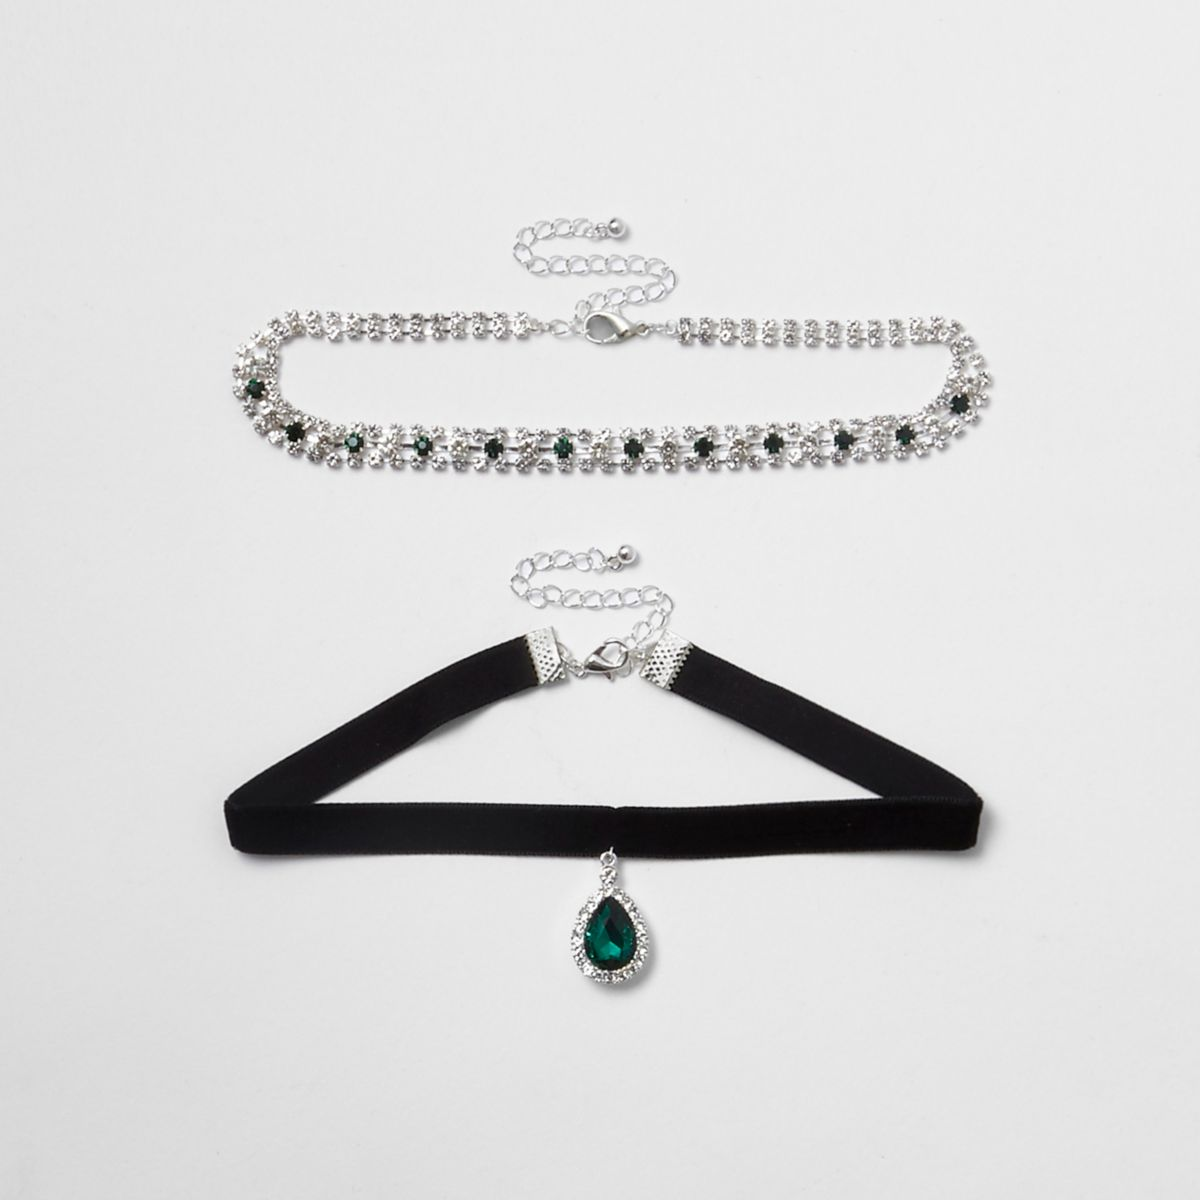 Green emerald tone jewel velvet choker set